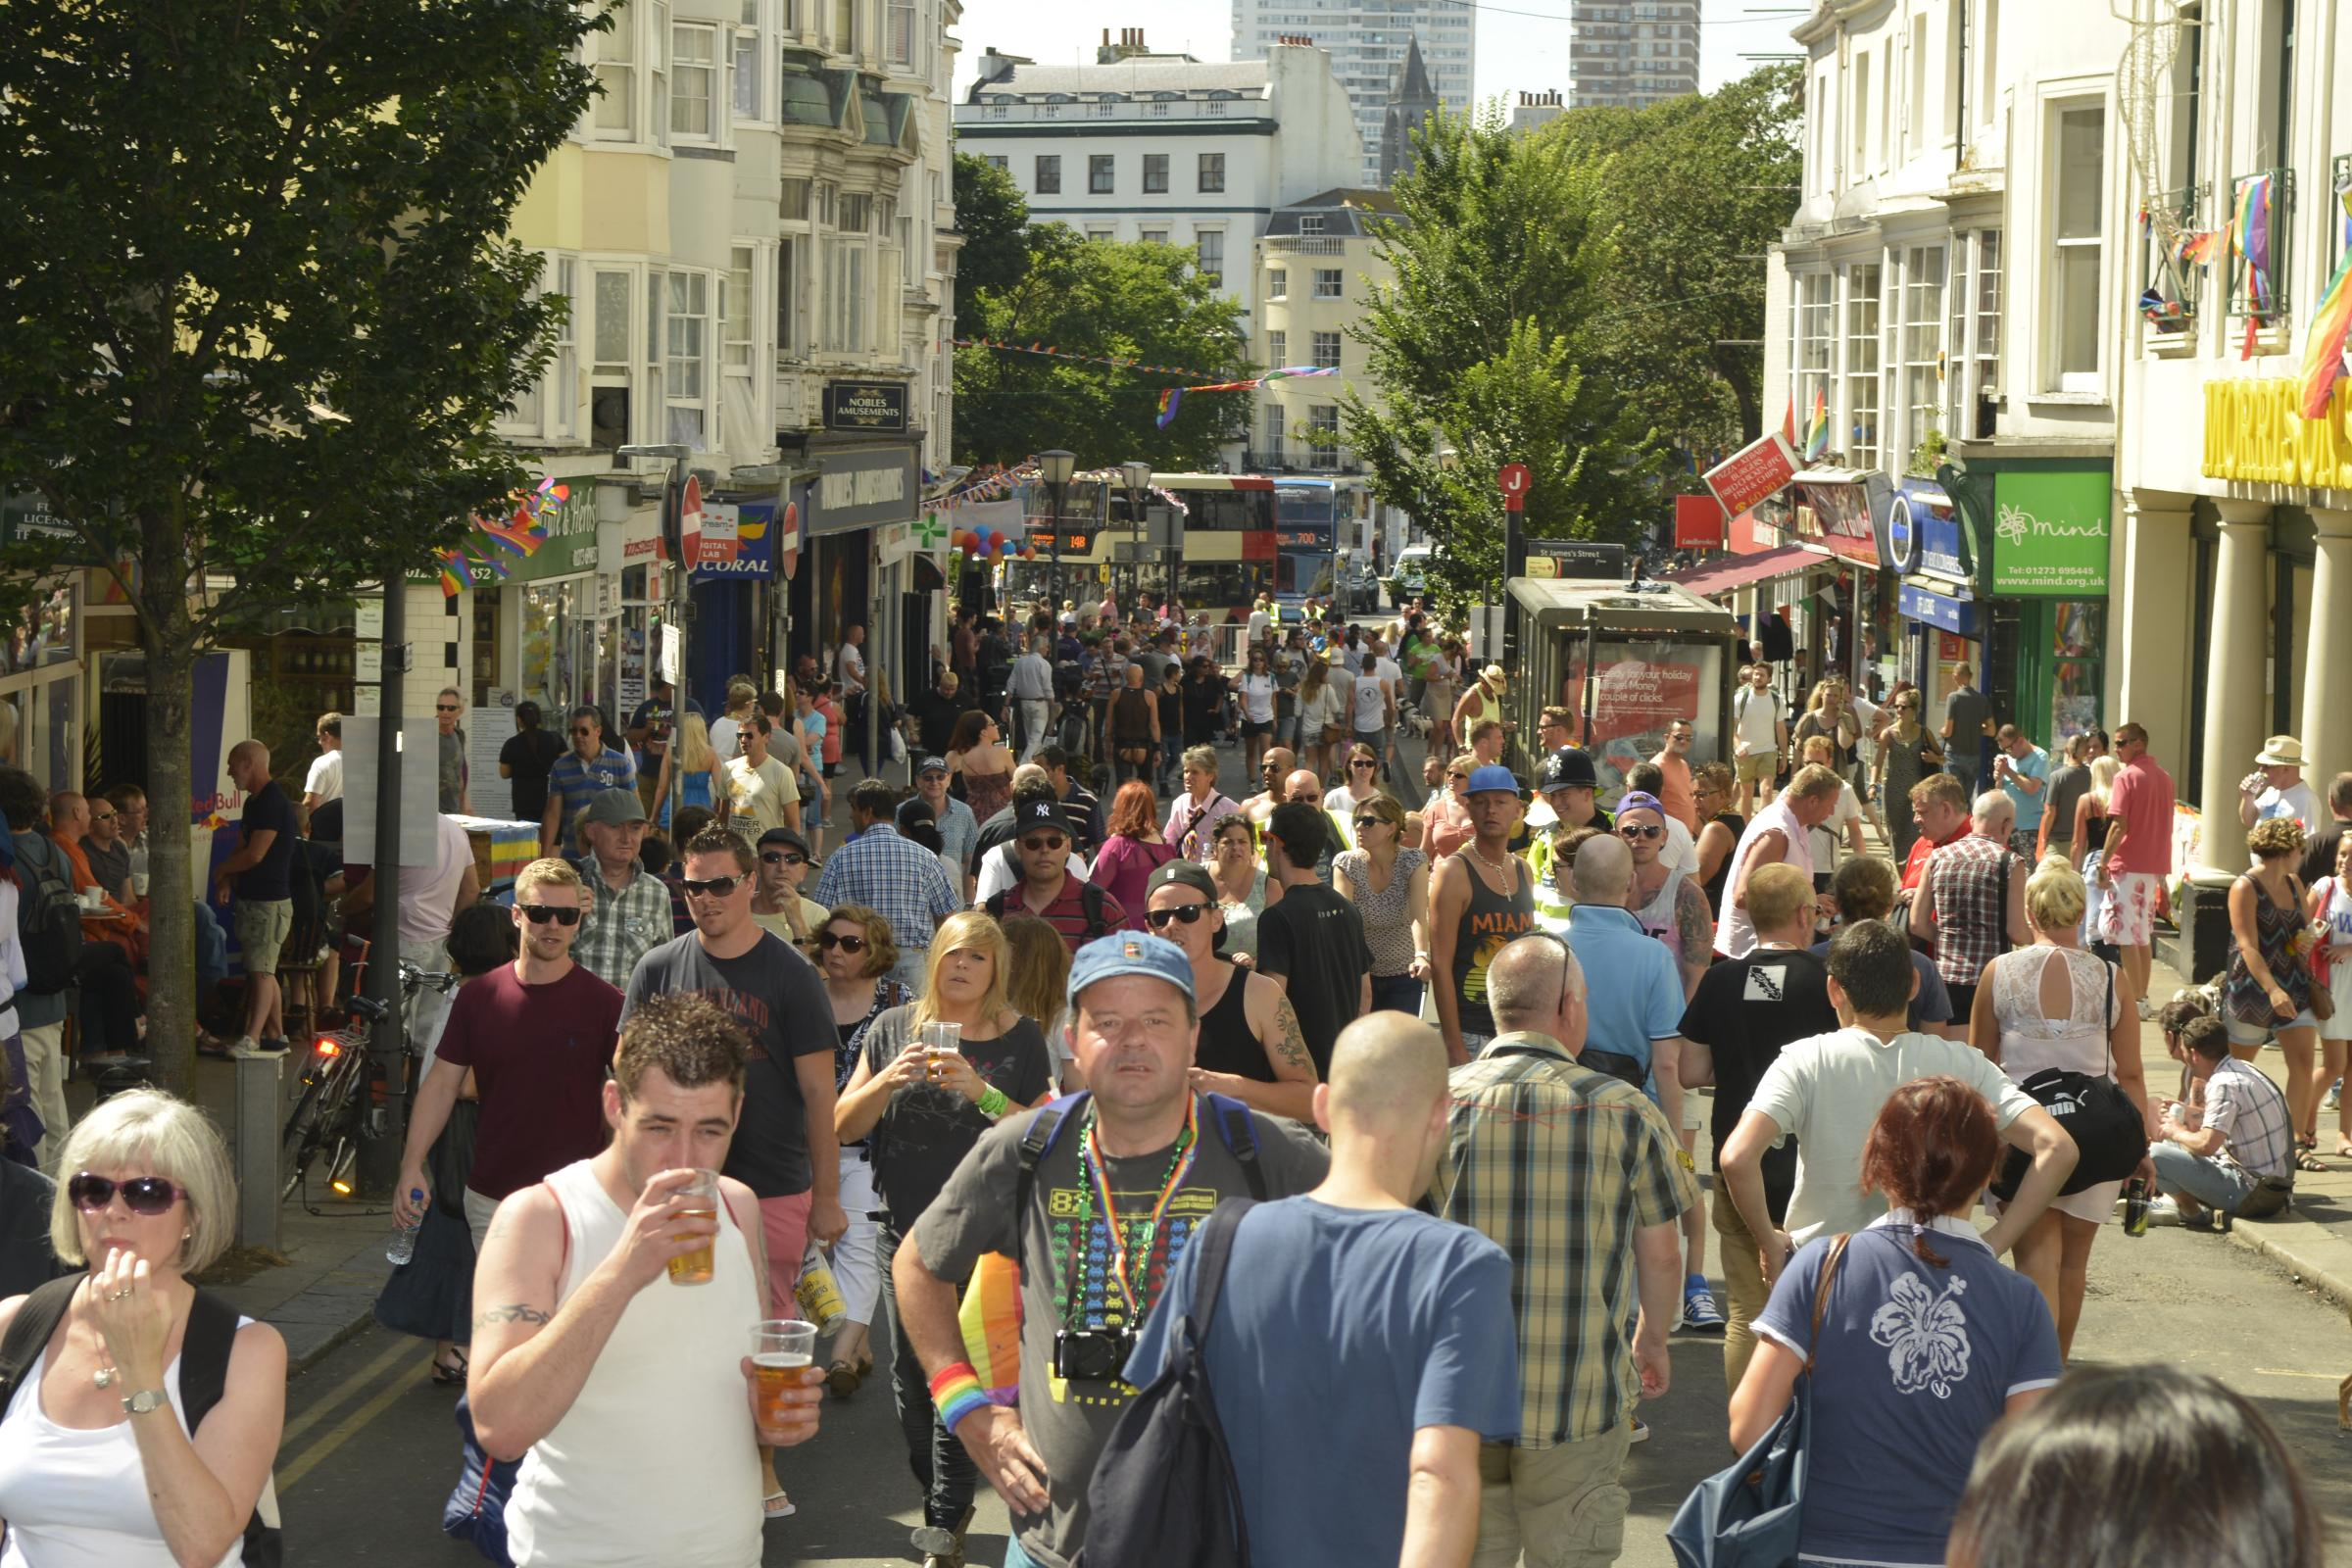 St James's Street during Pride 2013